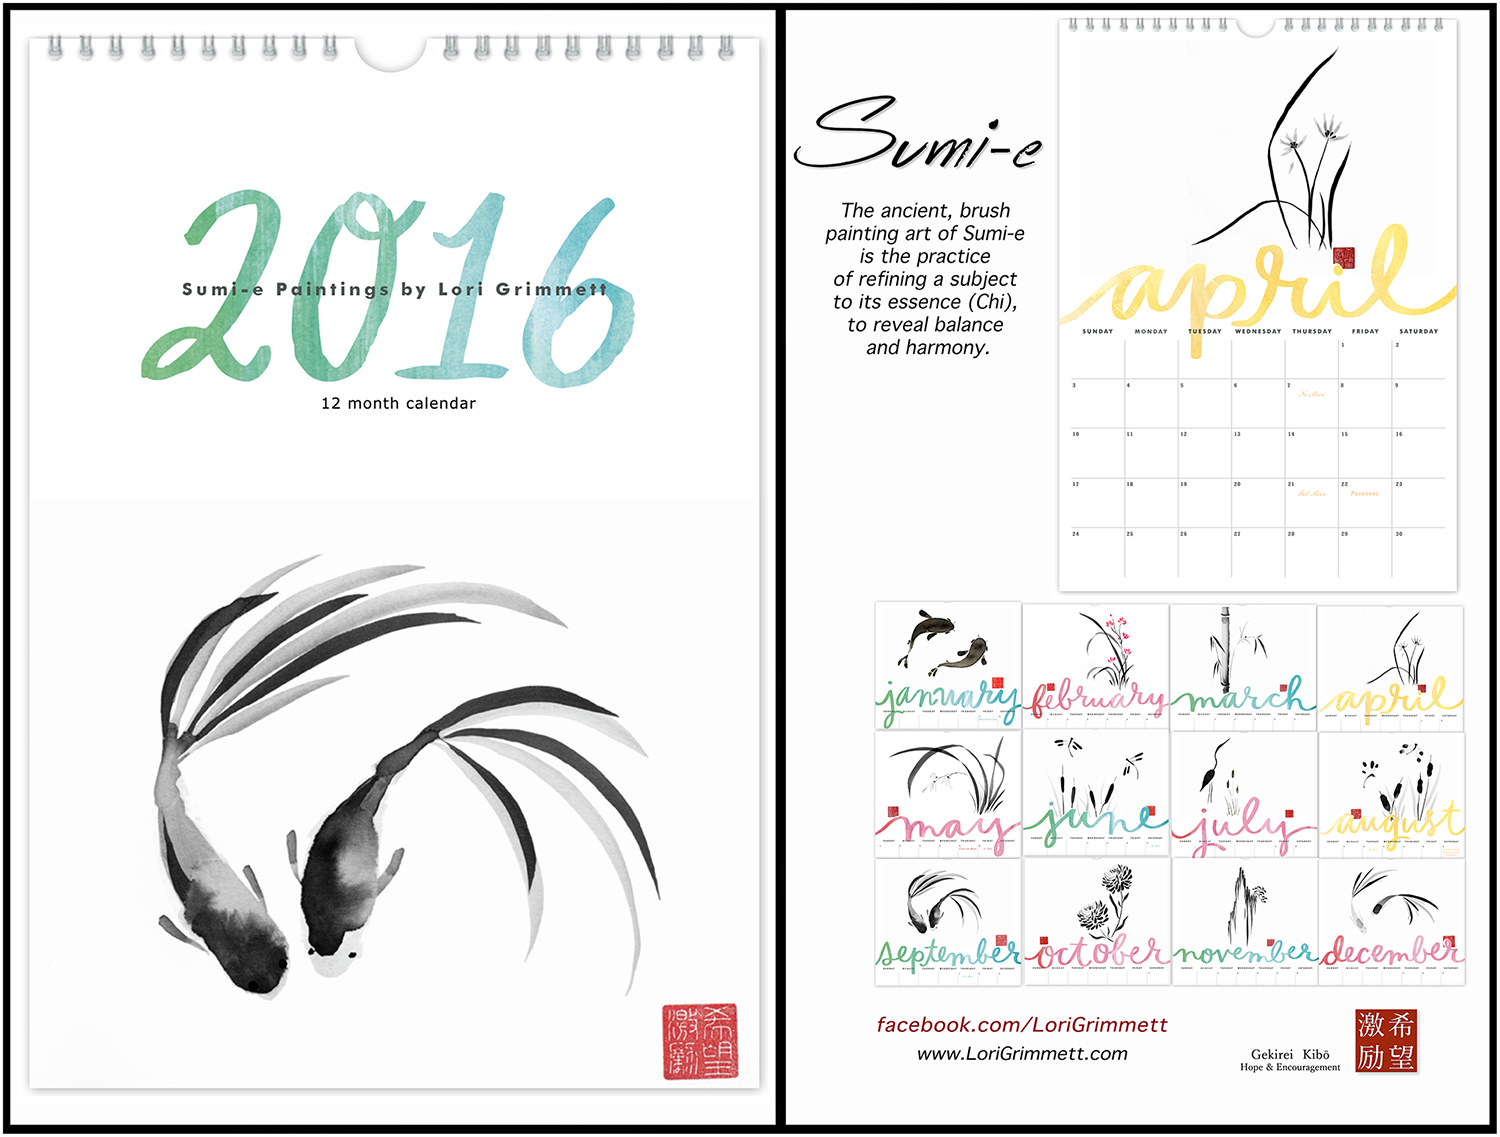 Sumi-e Paintings by Lori Grimmett. A 12 month calendar for 2016.